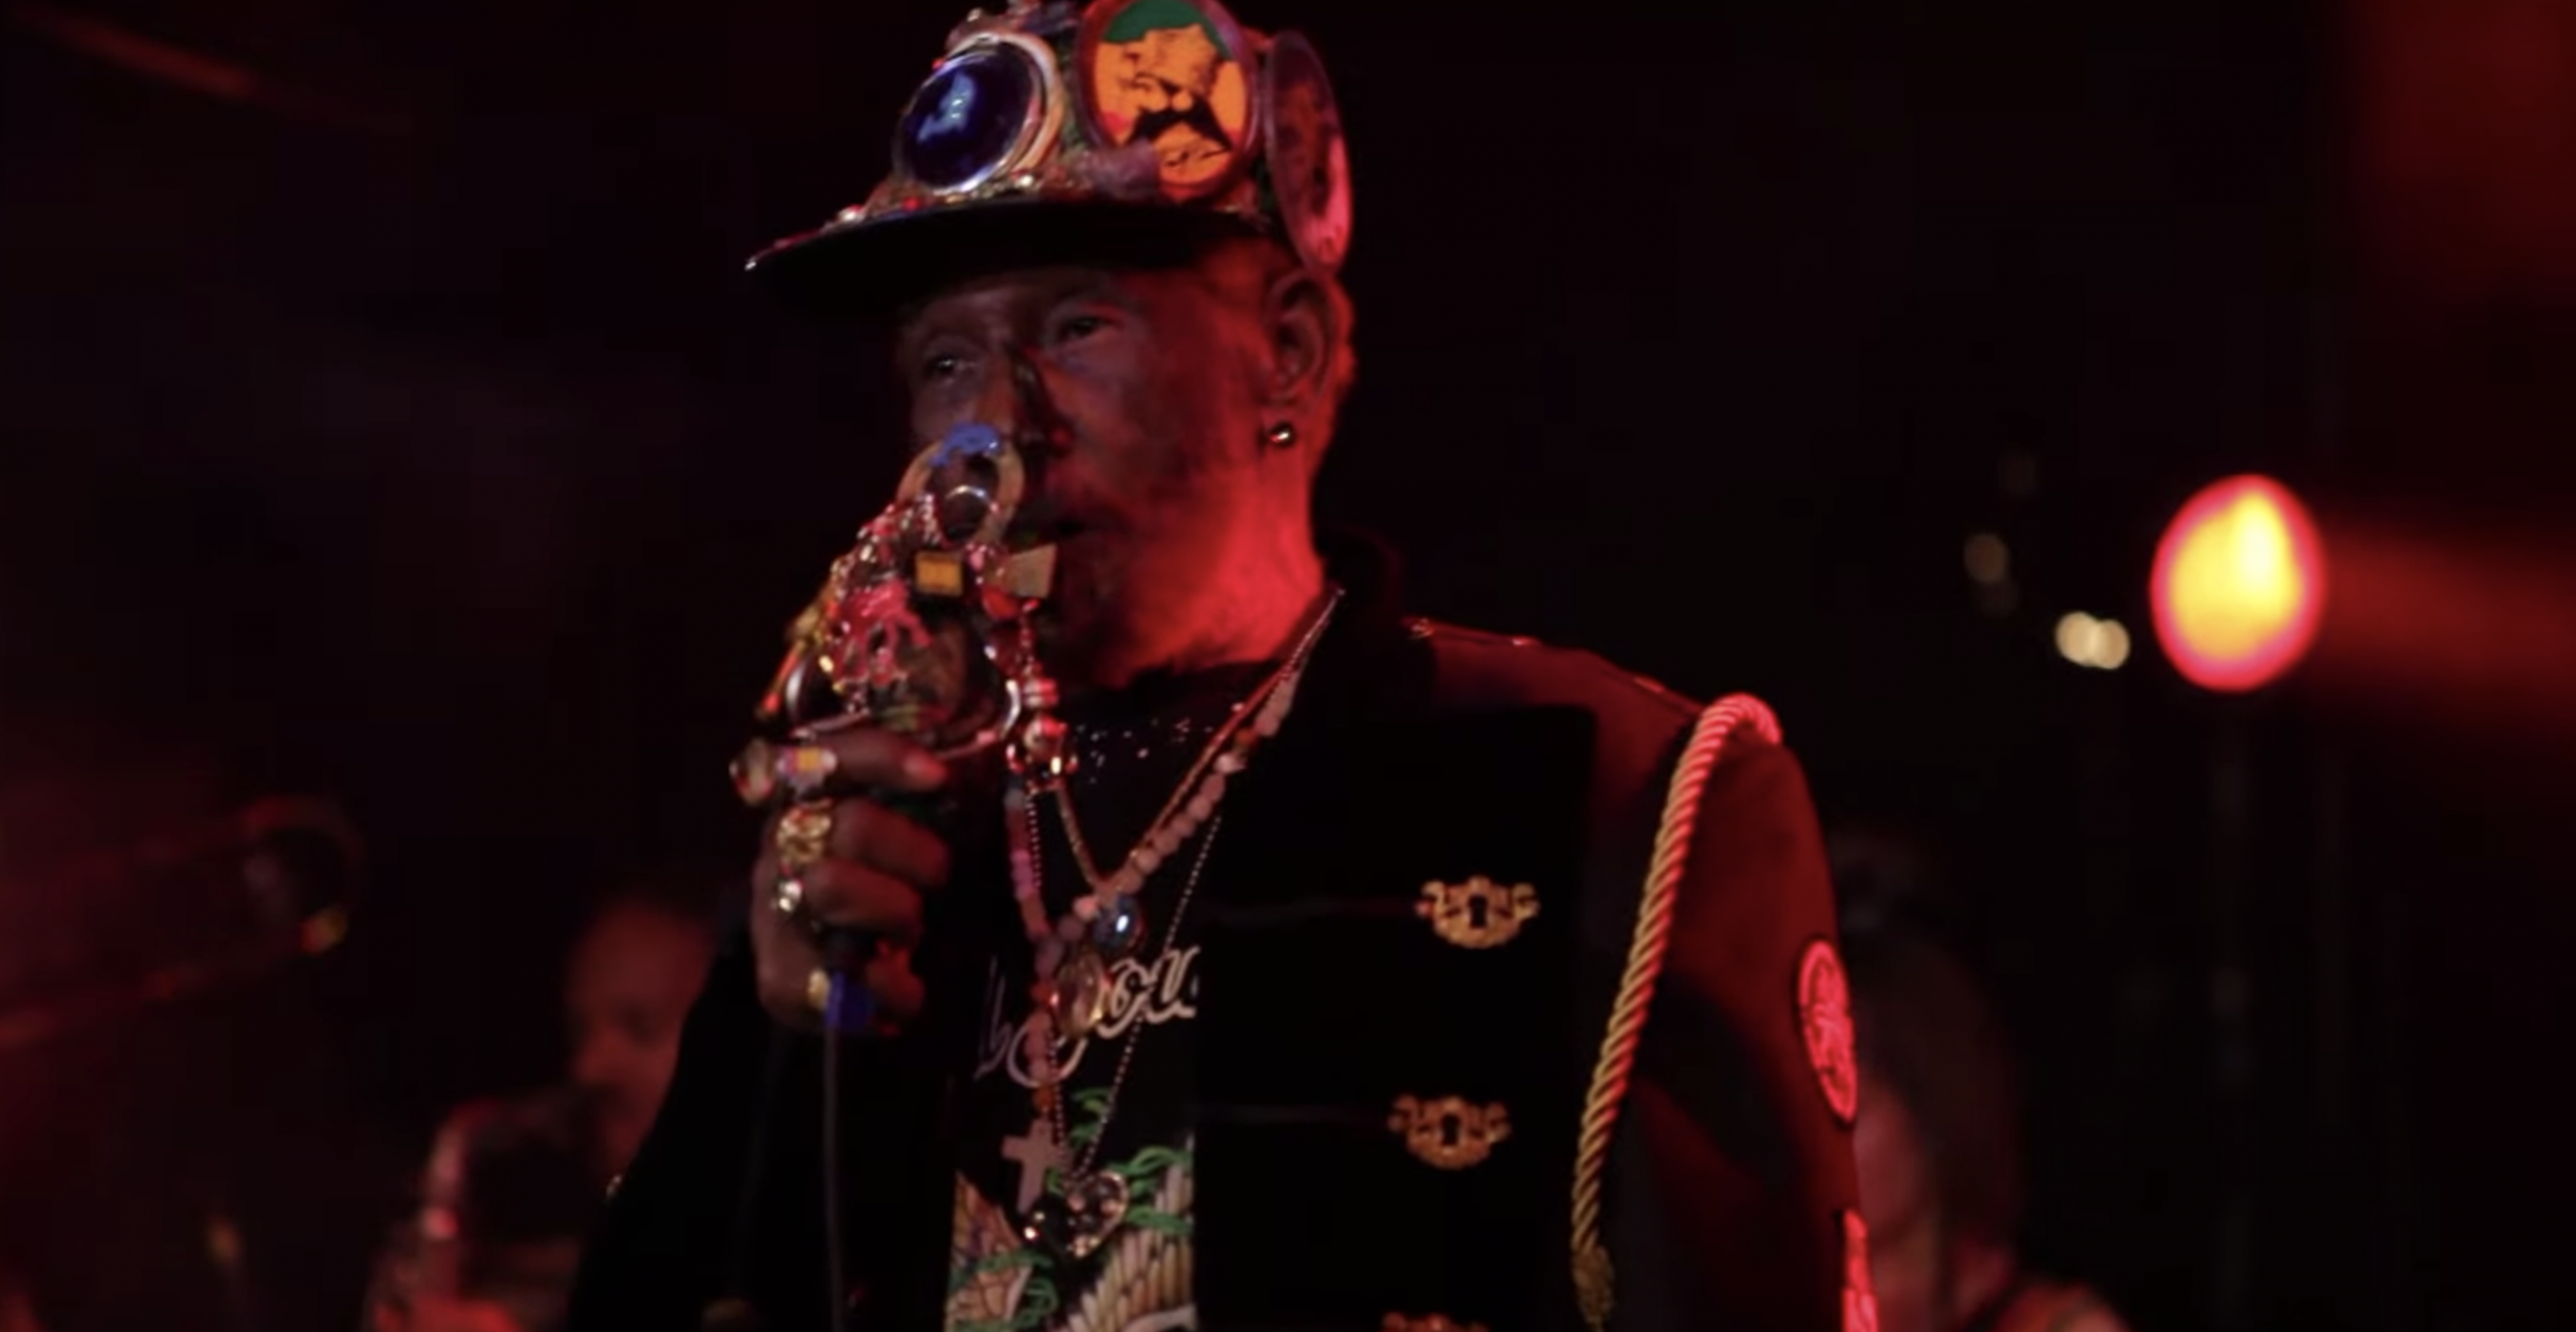 Lee Scratch Perry Dub Club Echoplex